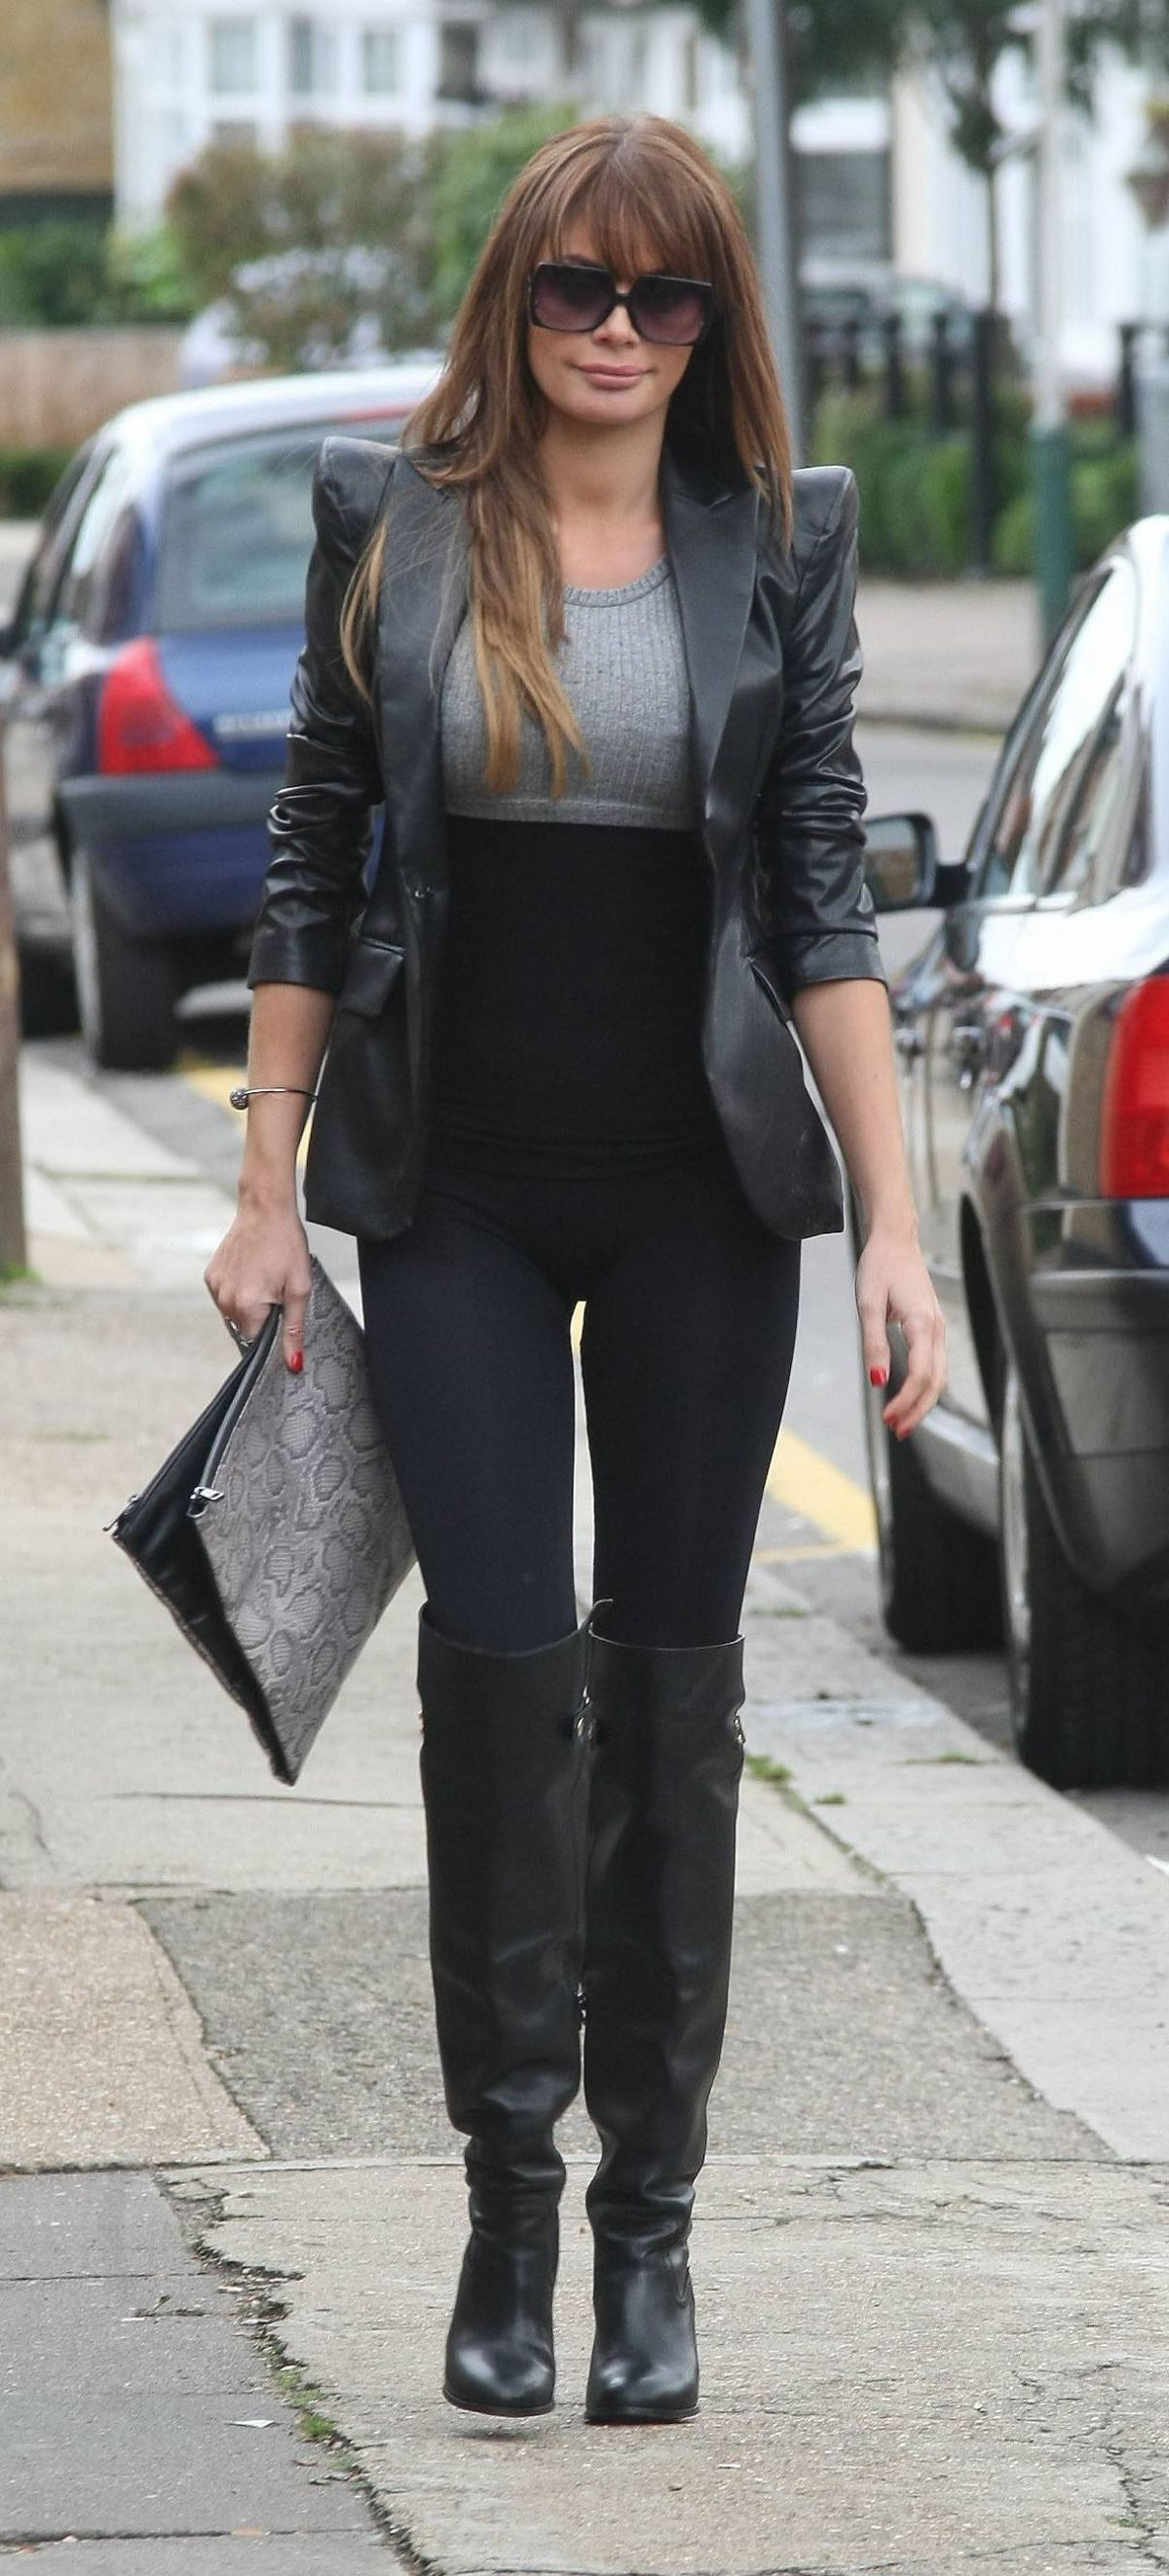 Chloe Sims in Black Spandex - Opening a Tanning Shop in Upminster